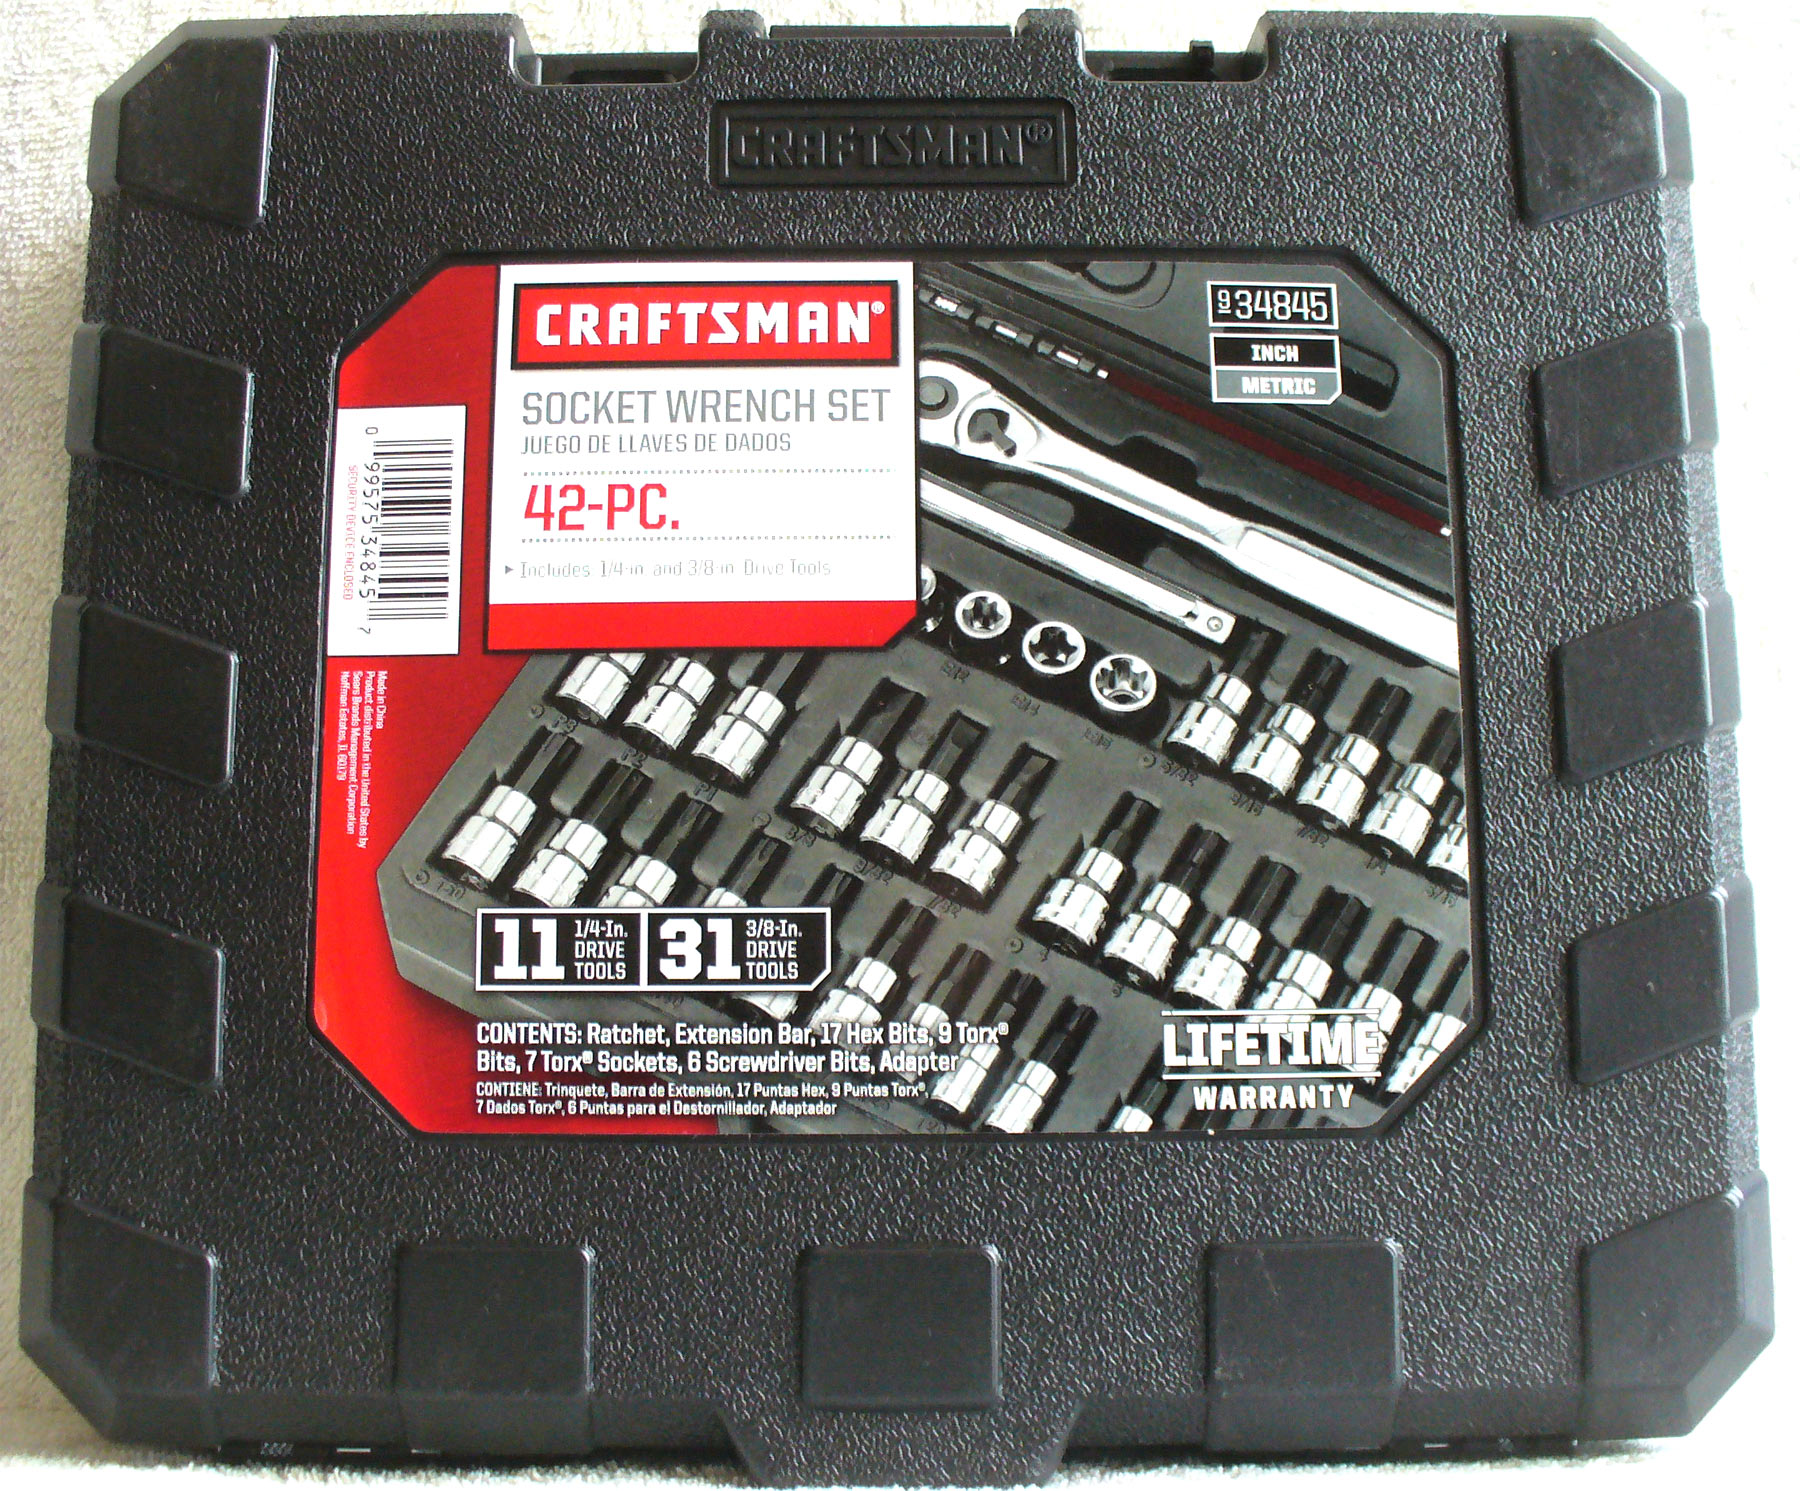 48c7f6ffeb1 Craftsman 42 piece 1 4 and 3 8-inch Drive Bit Torx Bit Socket Wrench Set  11-1 4